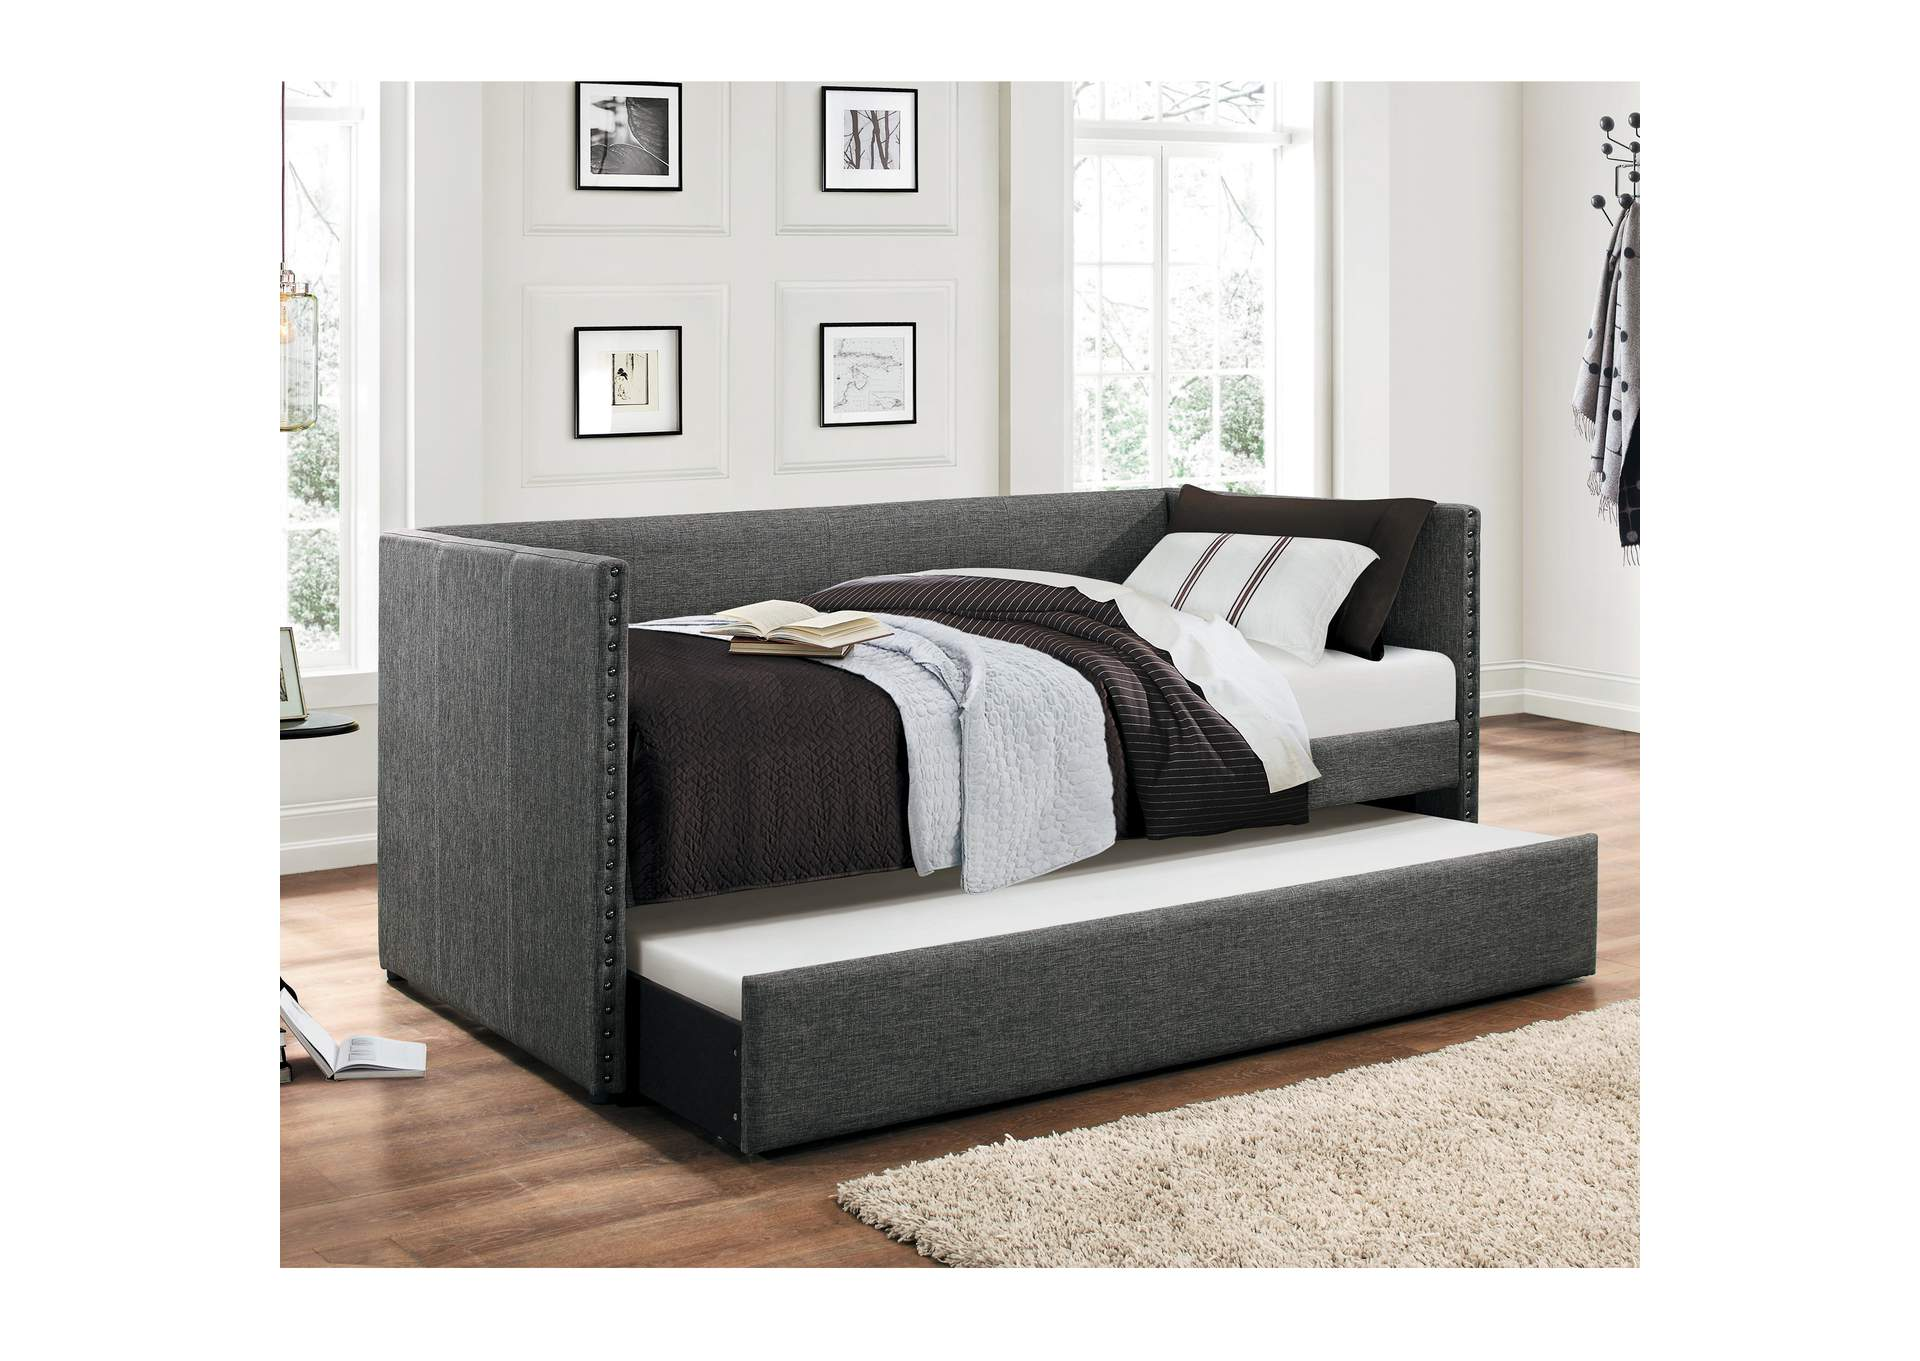 Therese Grey Daybed W/ Trundle,Homelegance